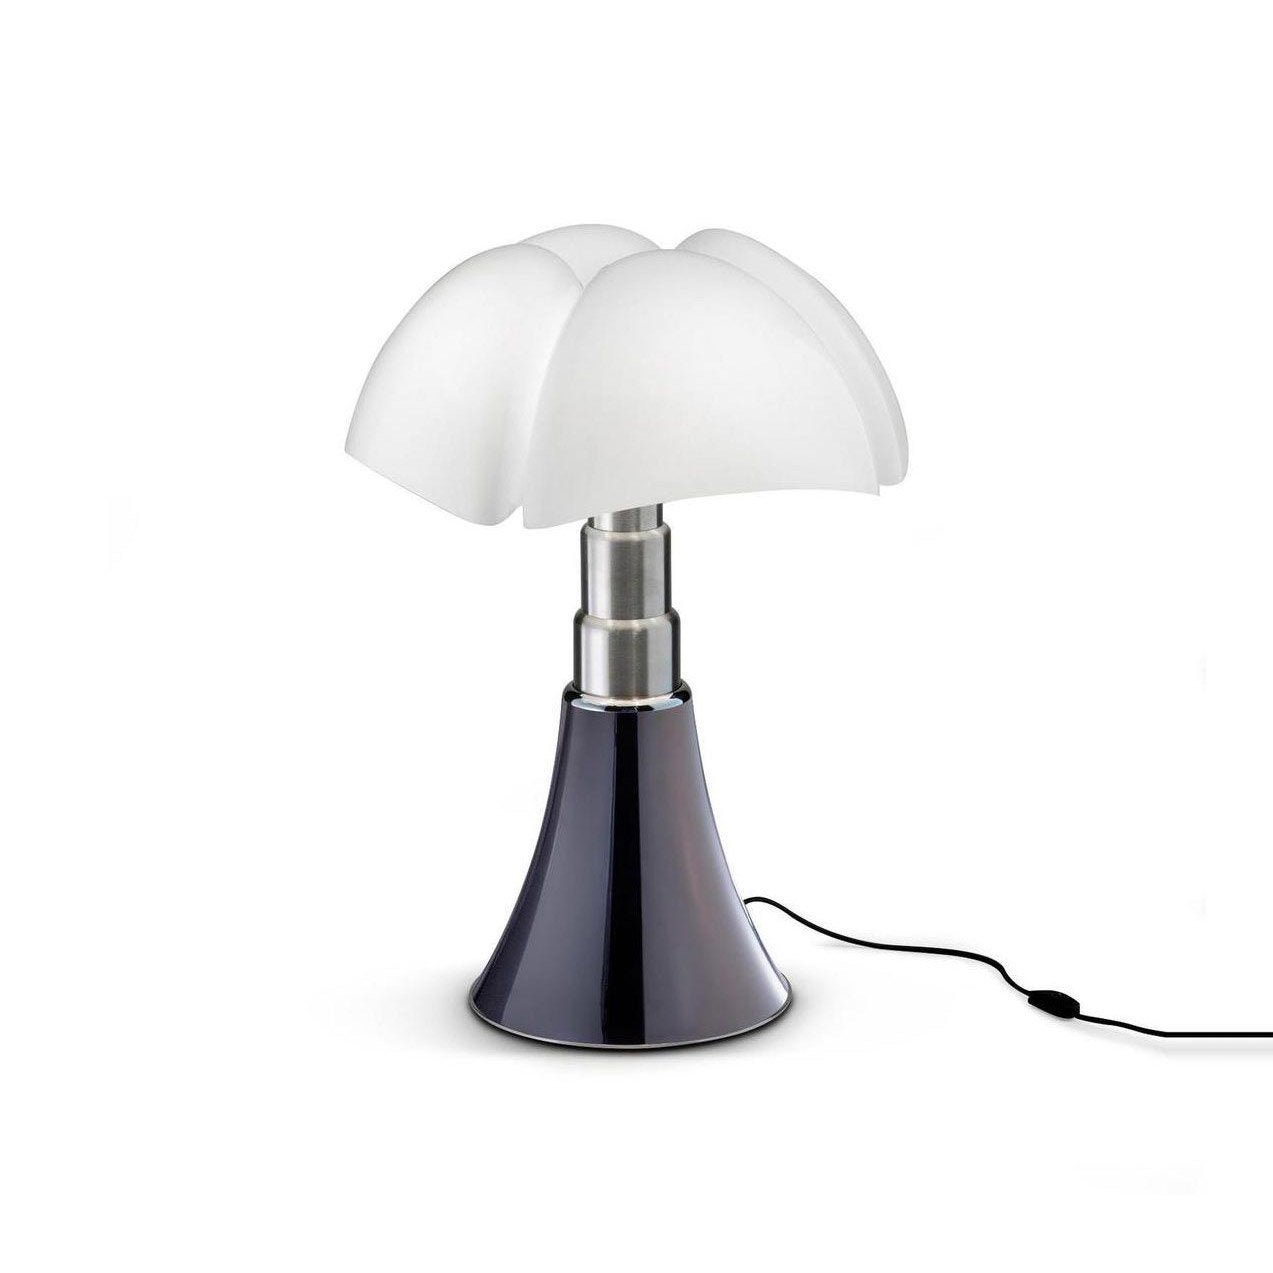 Lampe design Mini Pipistrello gris, ampoule LED integrée, H.35cm